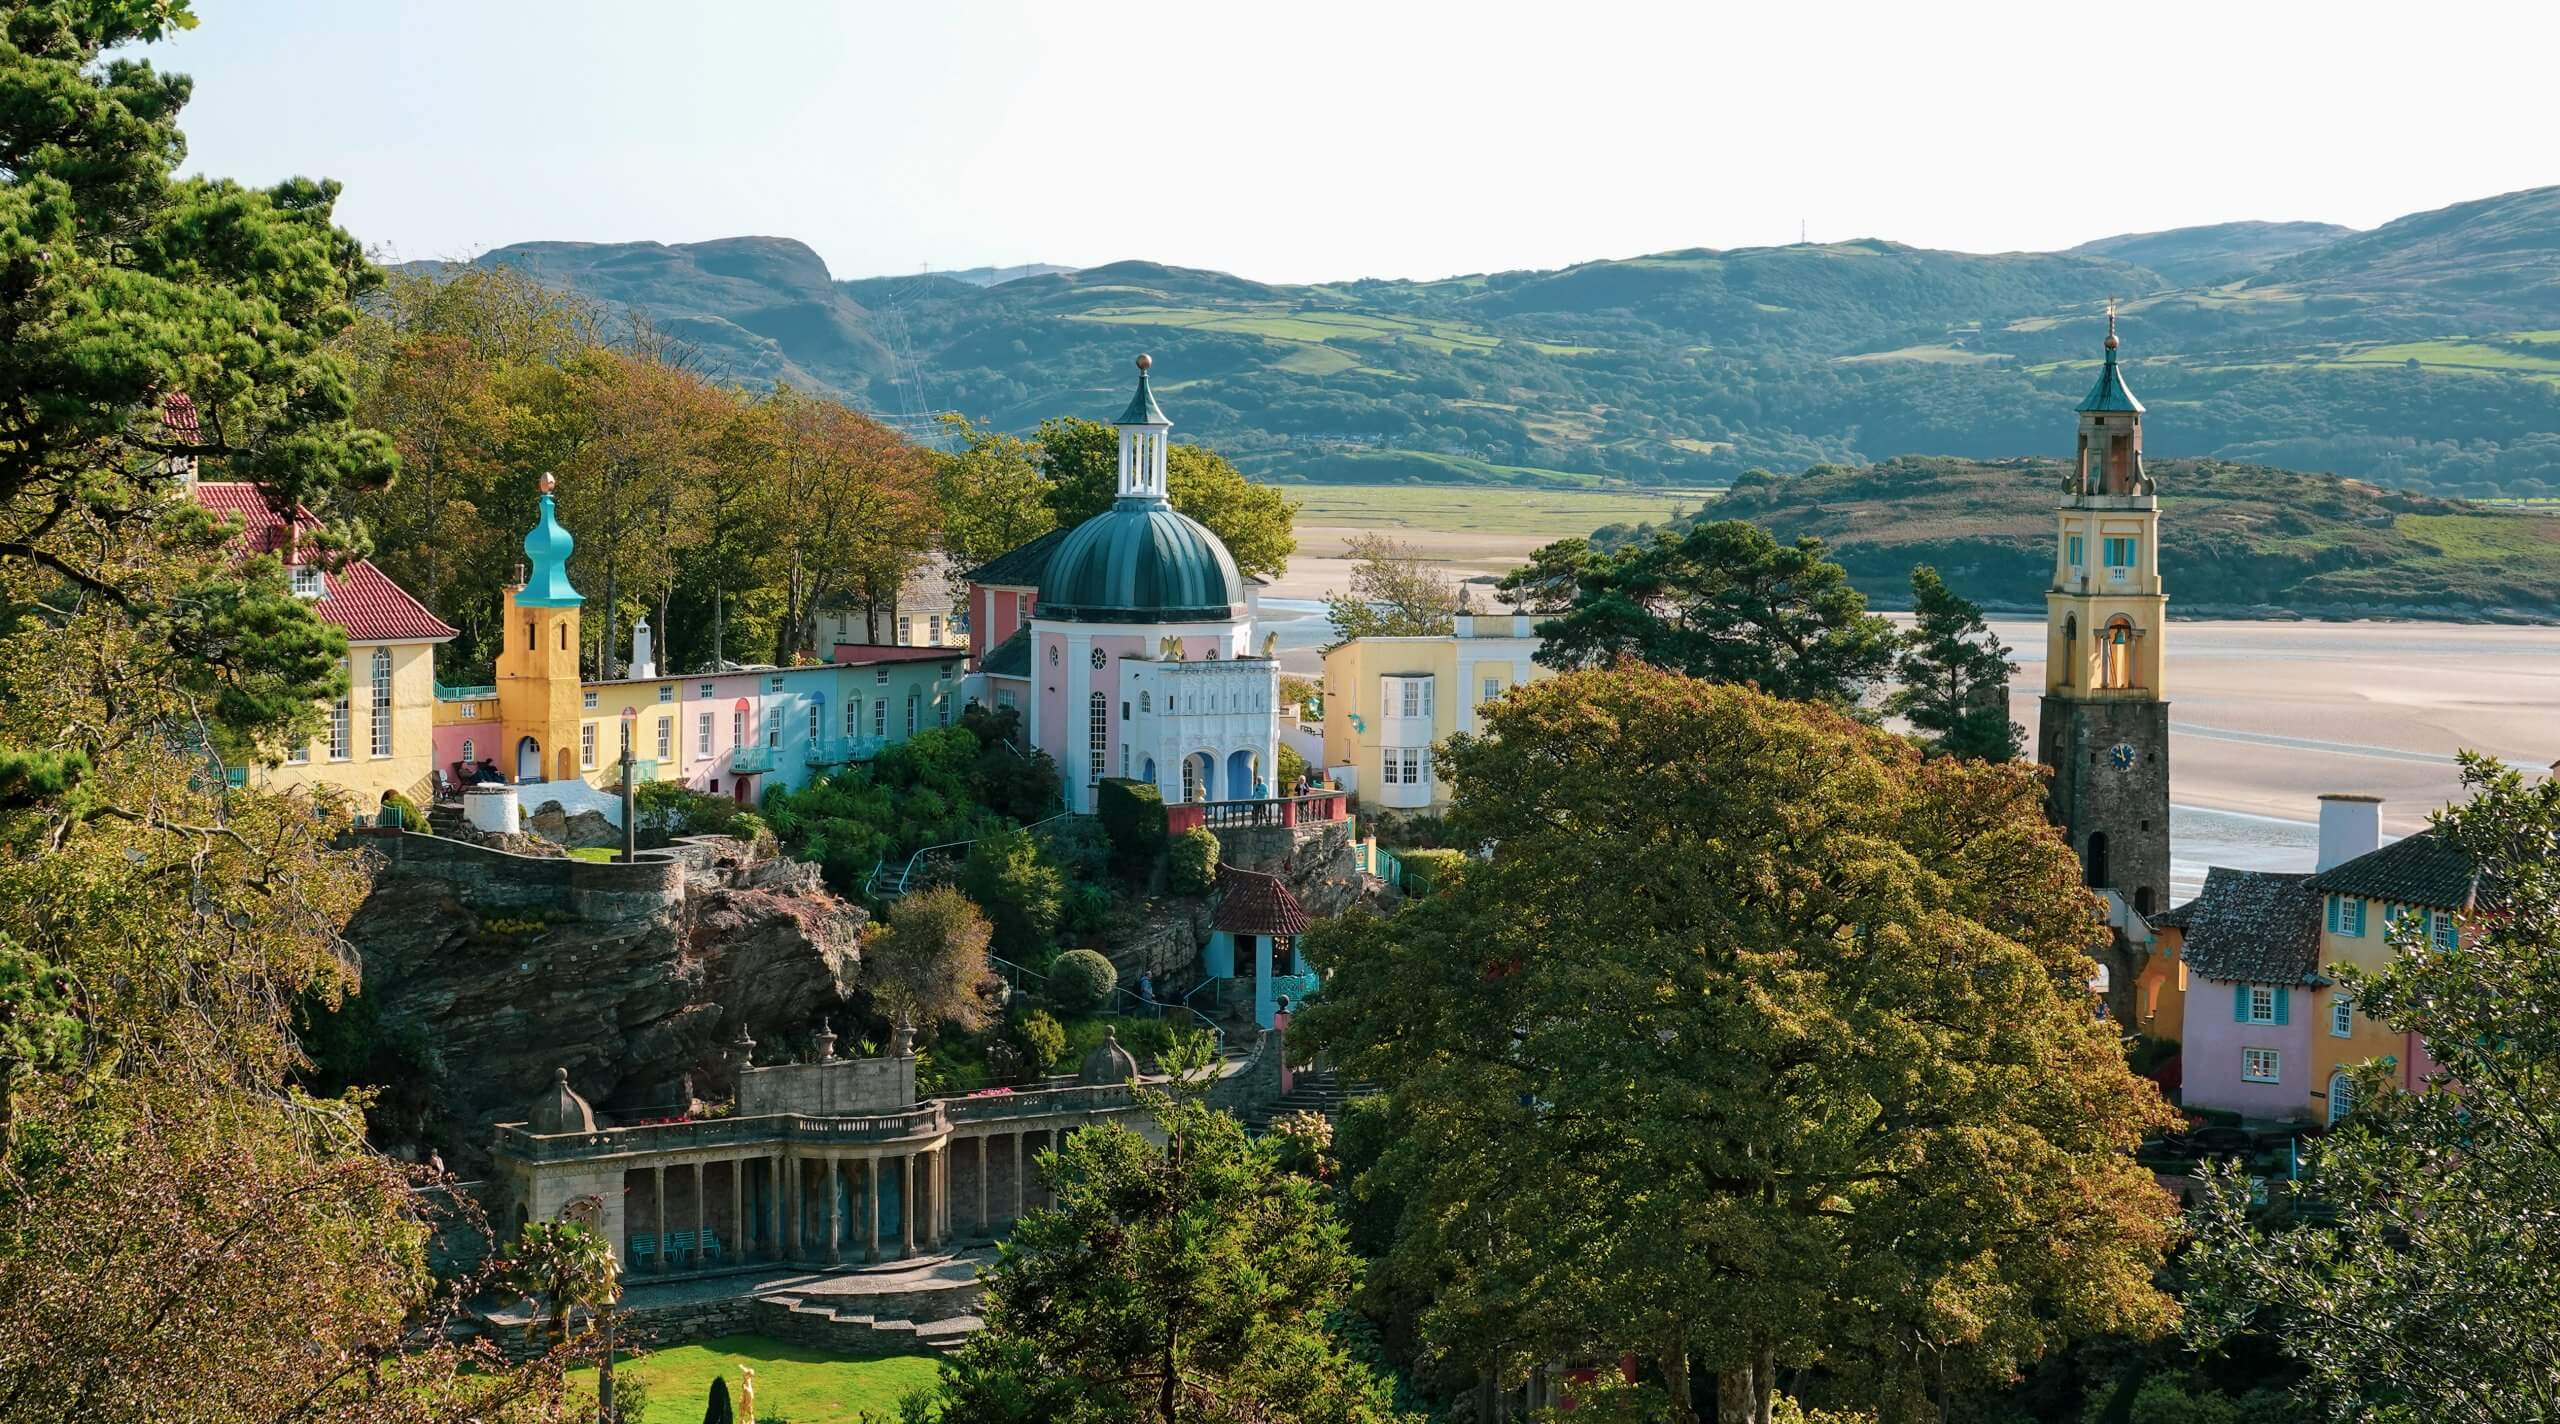 Aerial view of Portmeirion, North Wales, UK